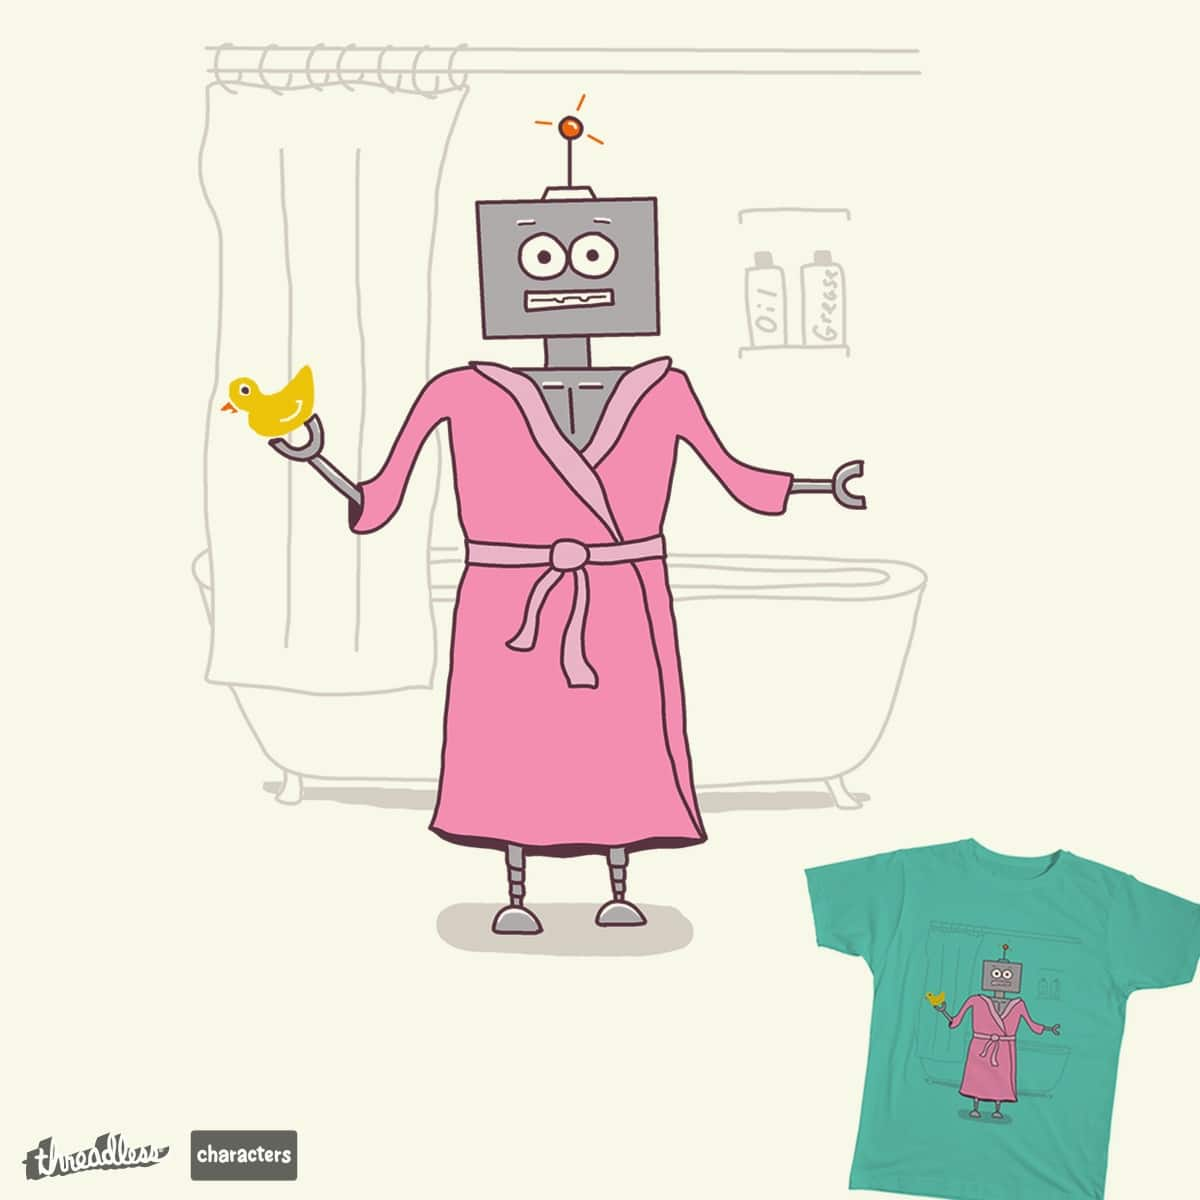 Robe-ot by AnthonyMoore on Threadless